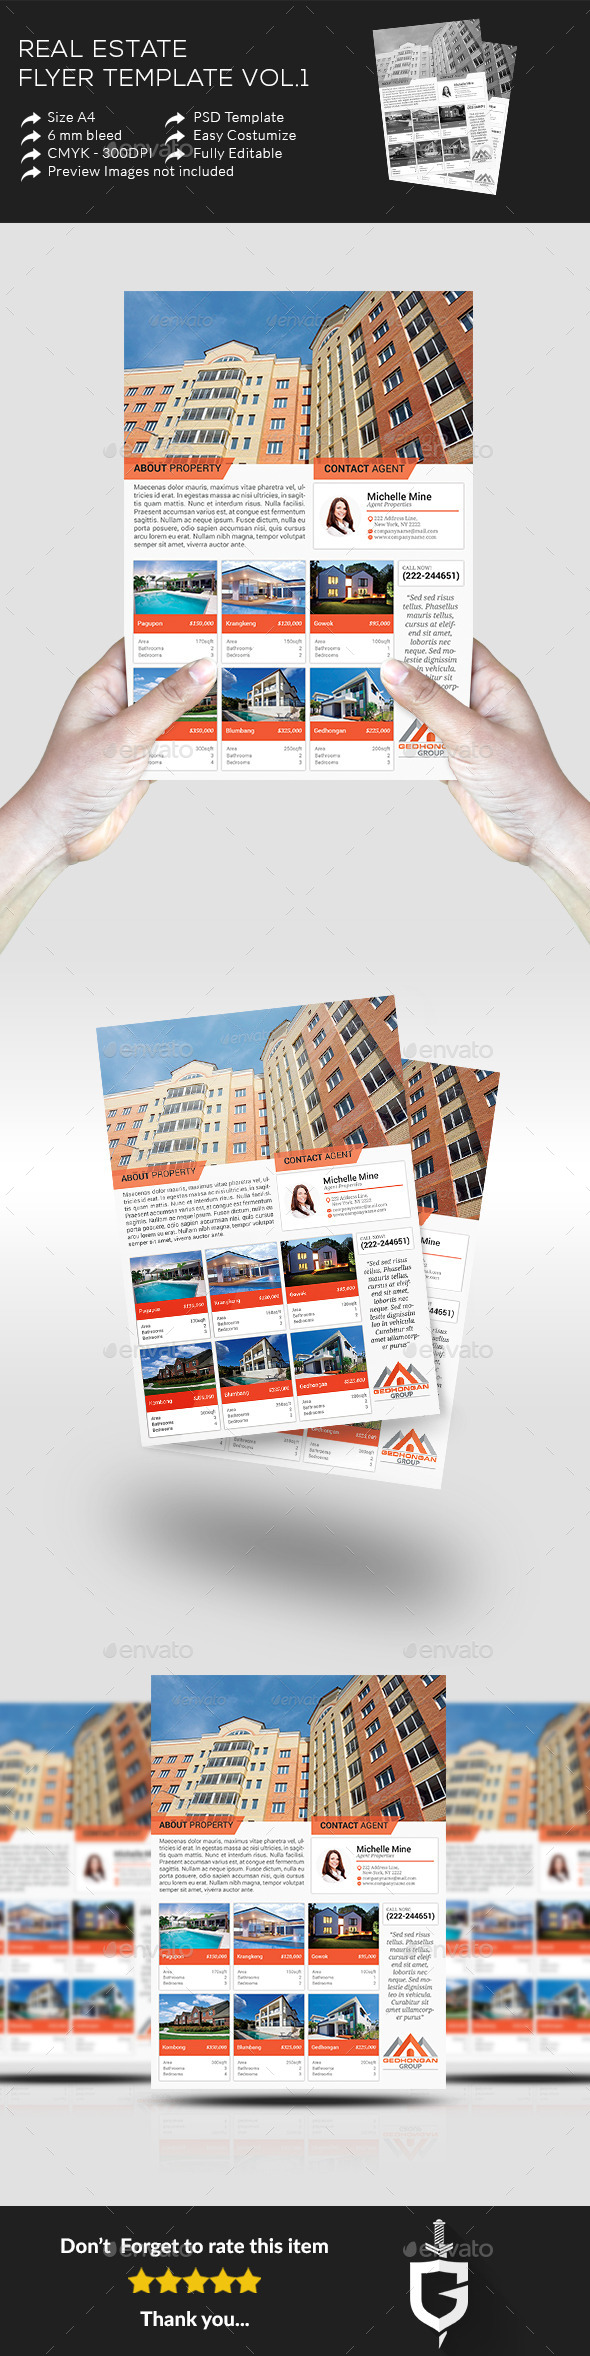 Real Estate Flyer Template Vol.1